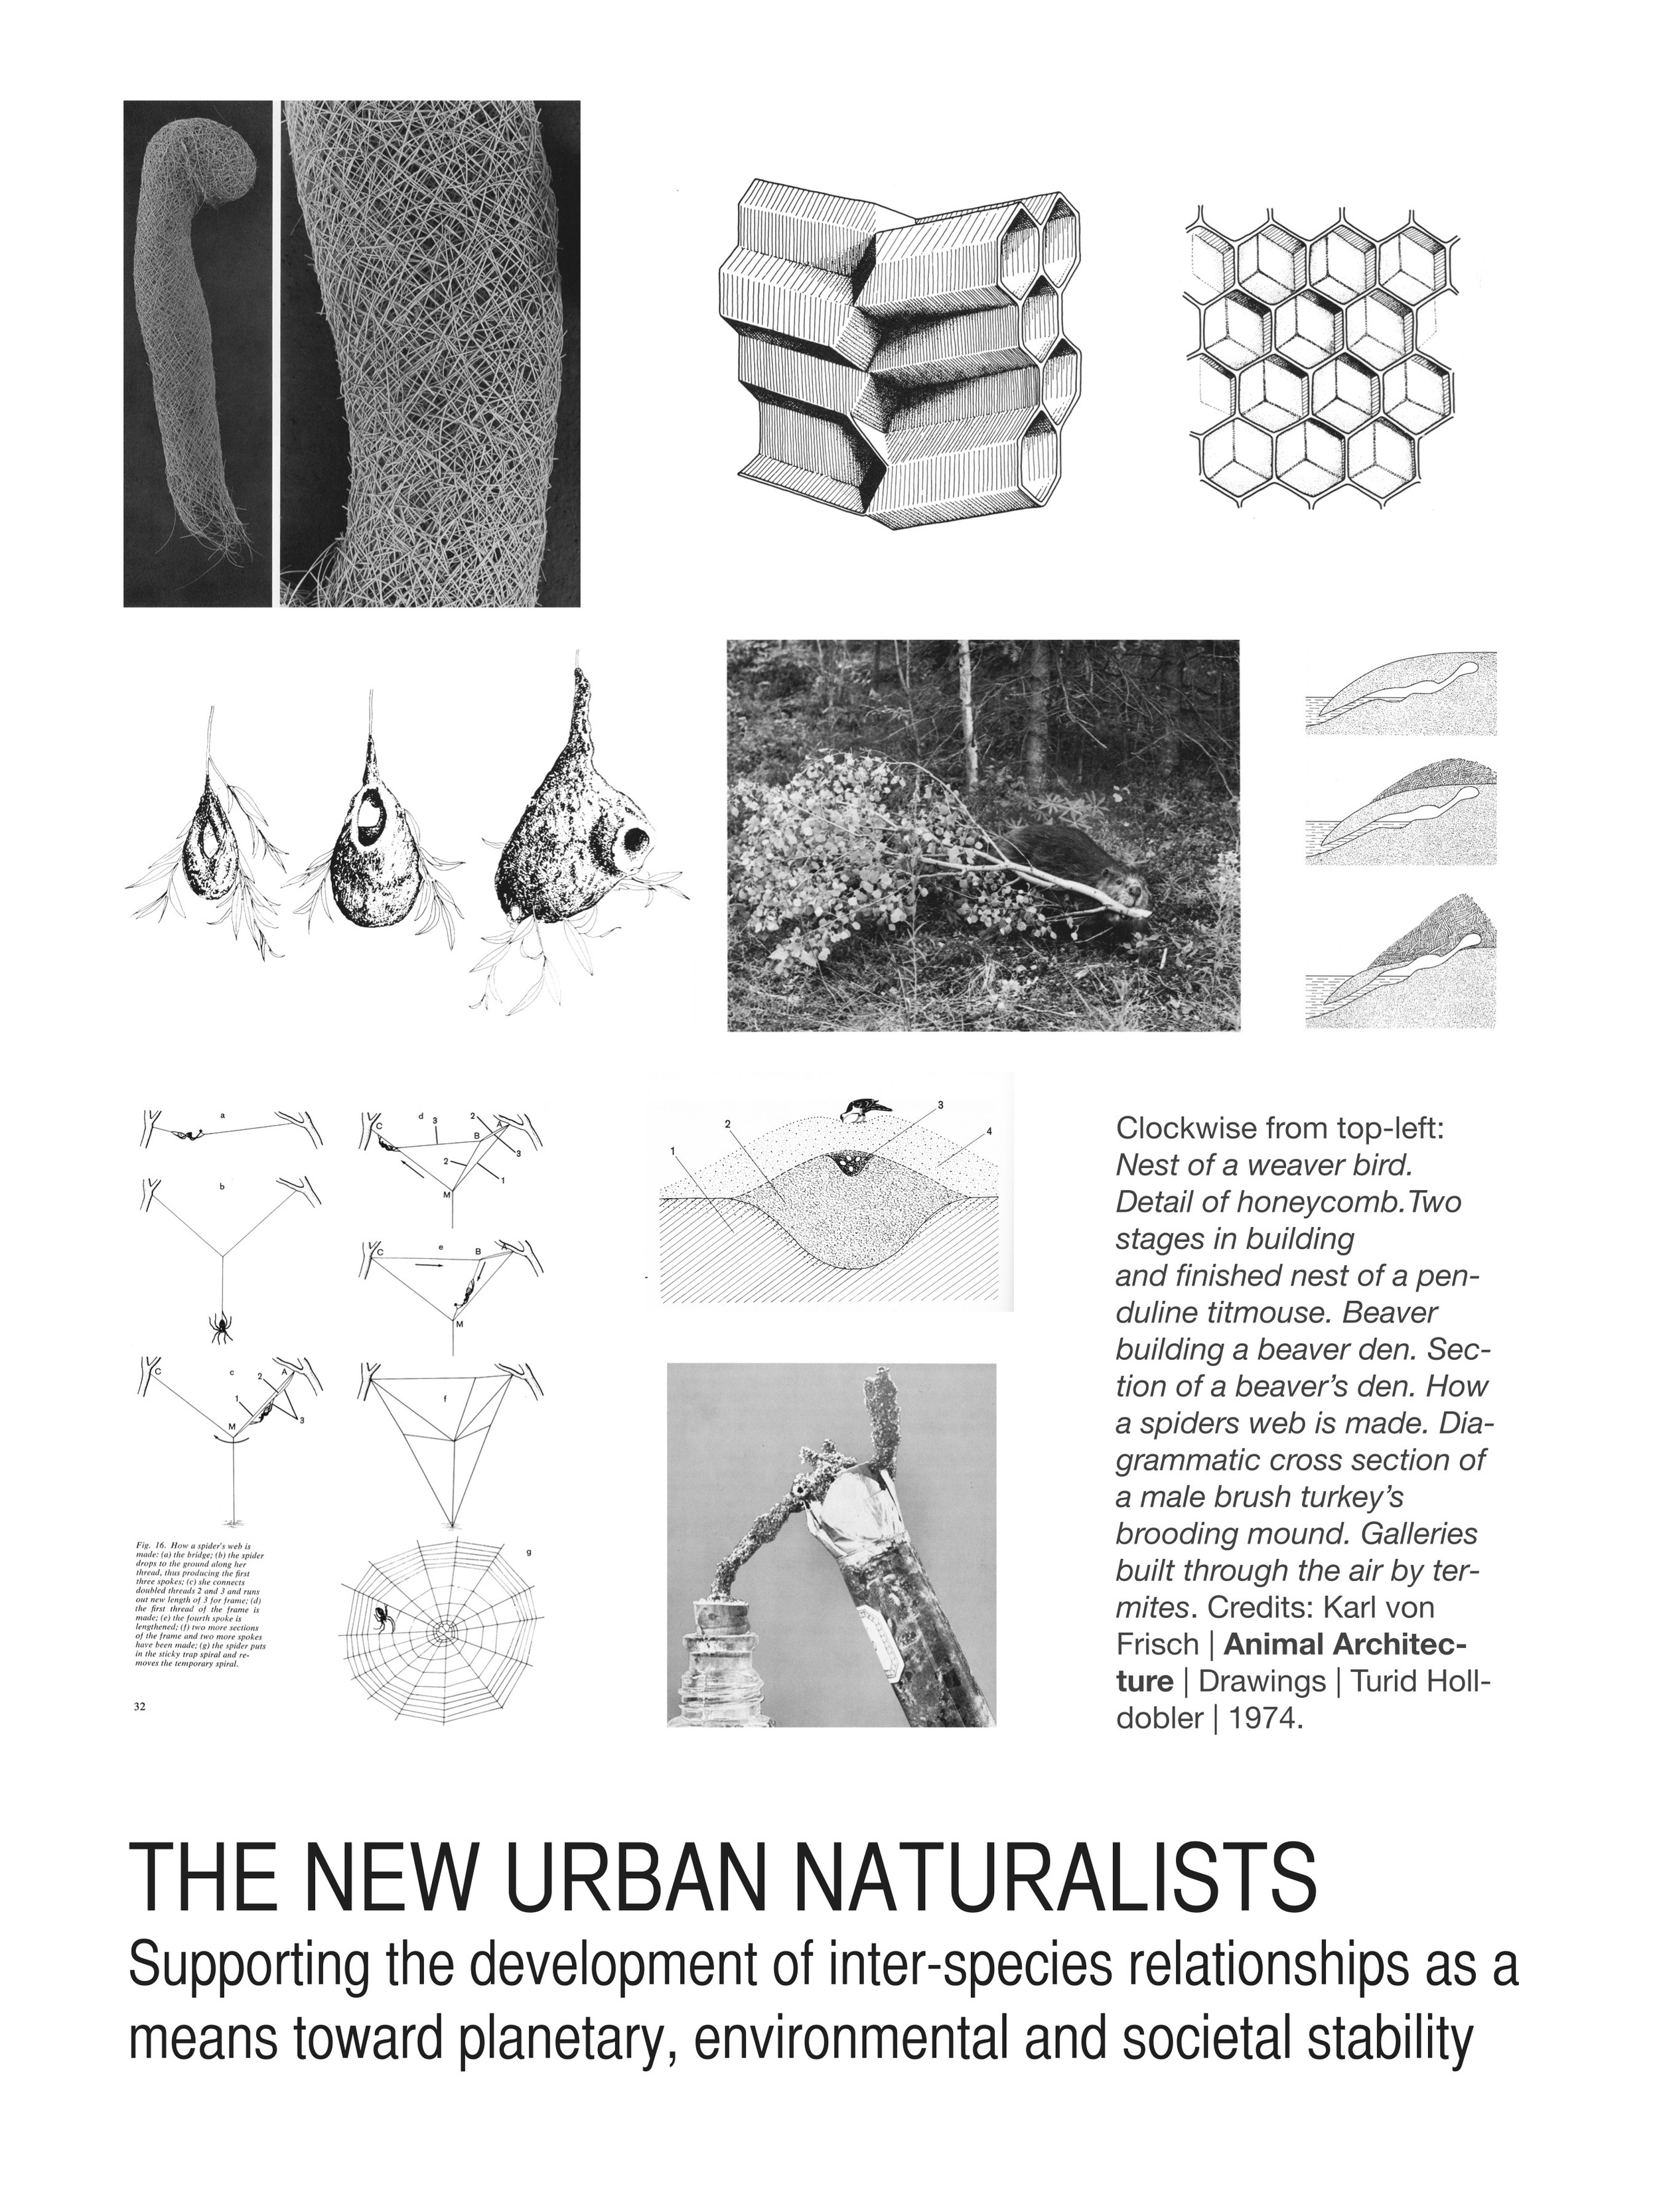 The New Urban Naturalists, 2013. Promotional poster. 18x24 inches.